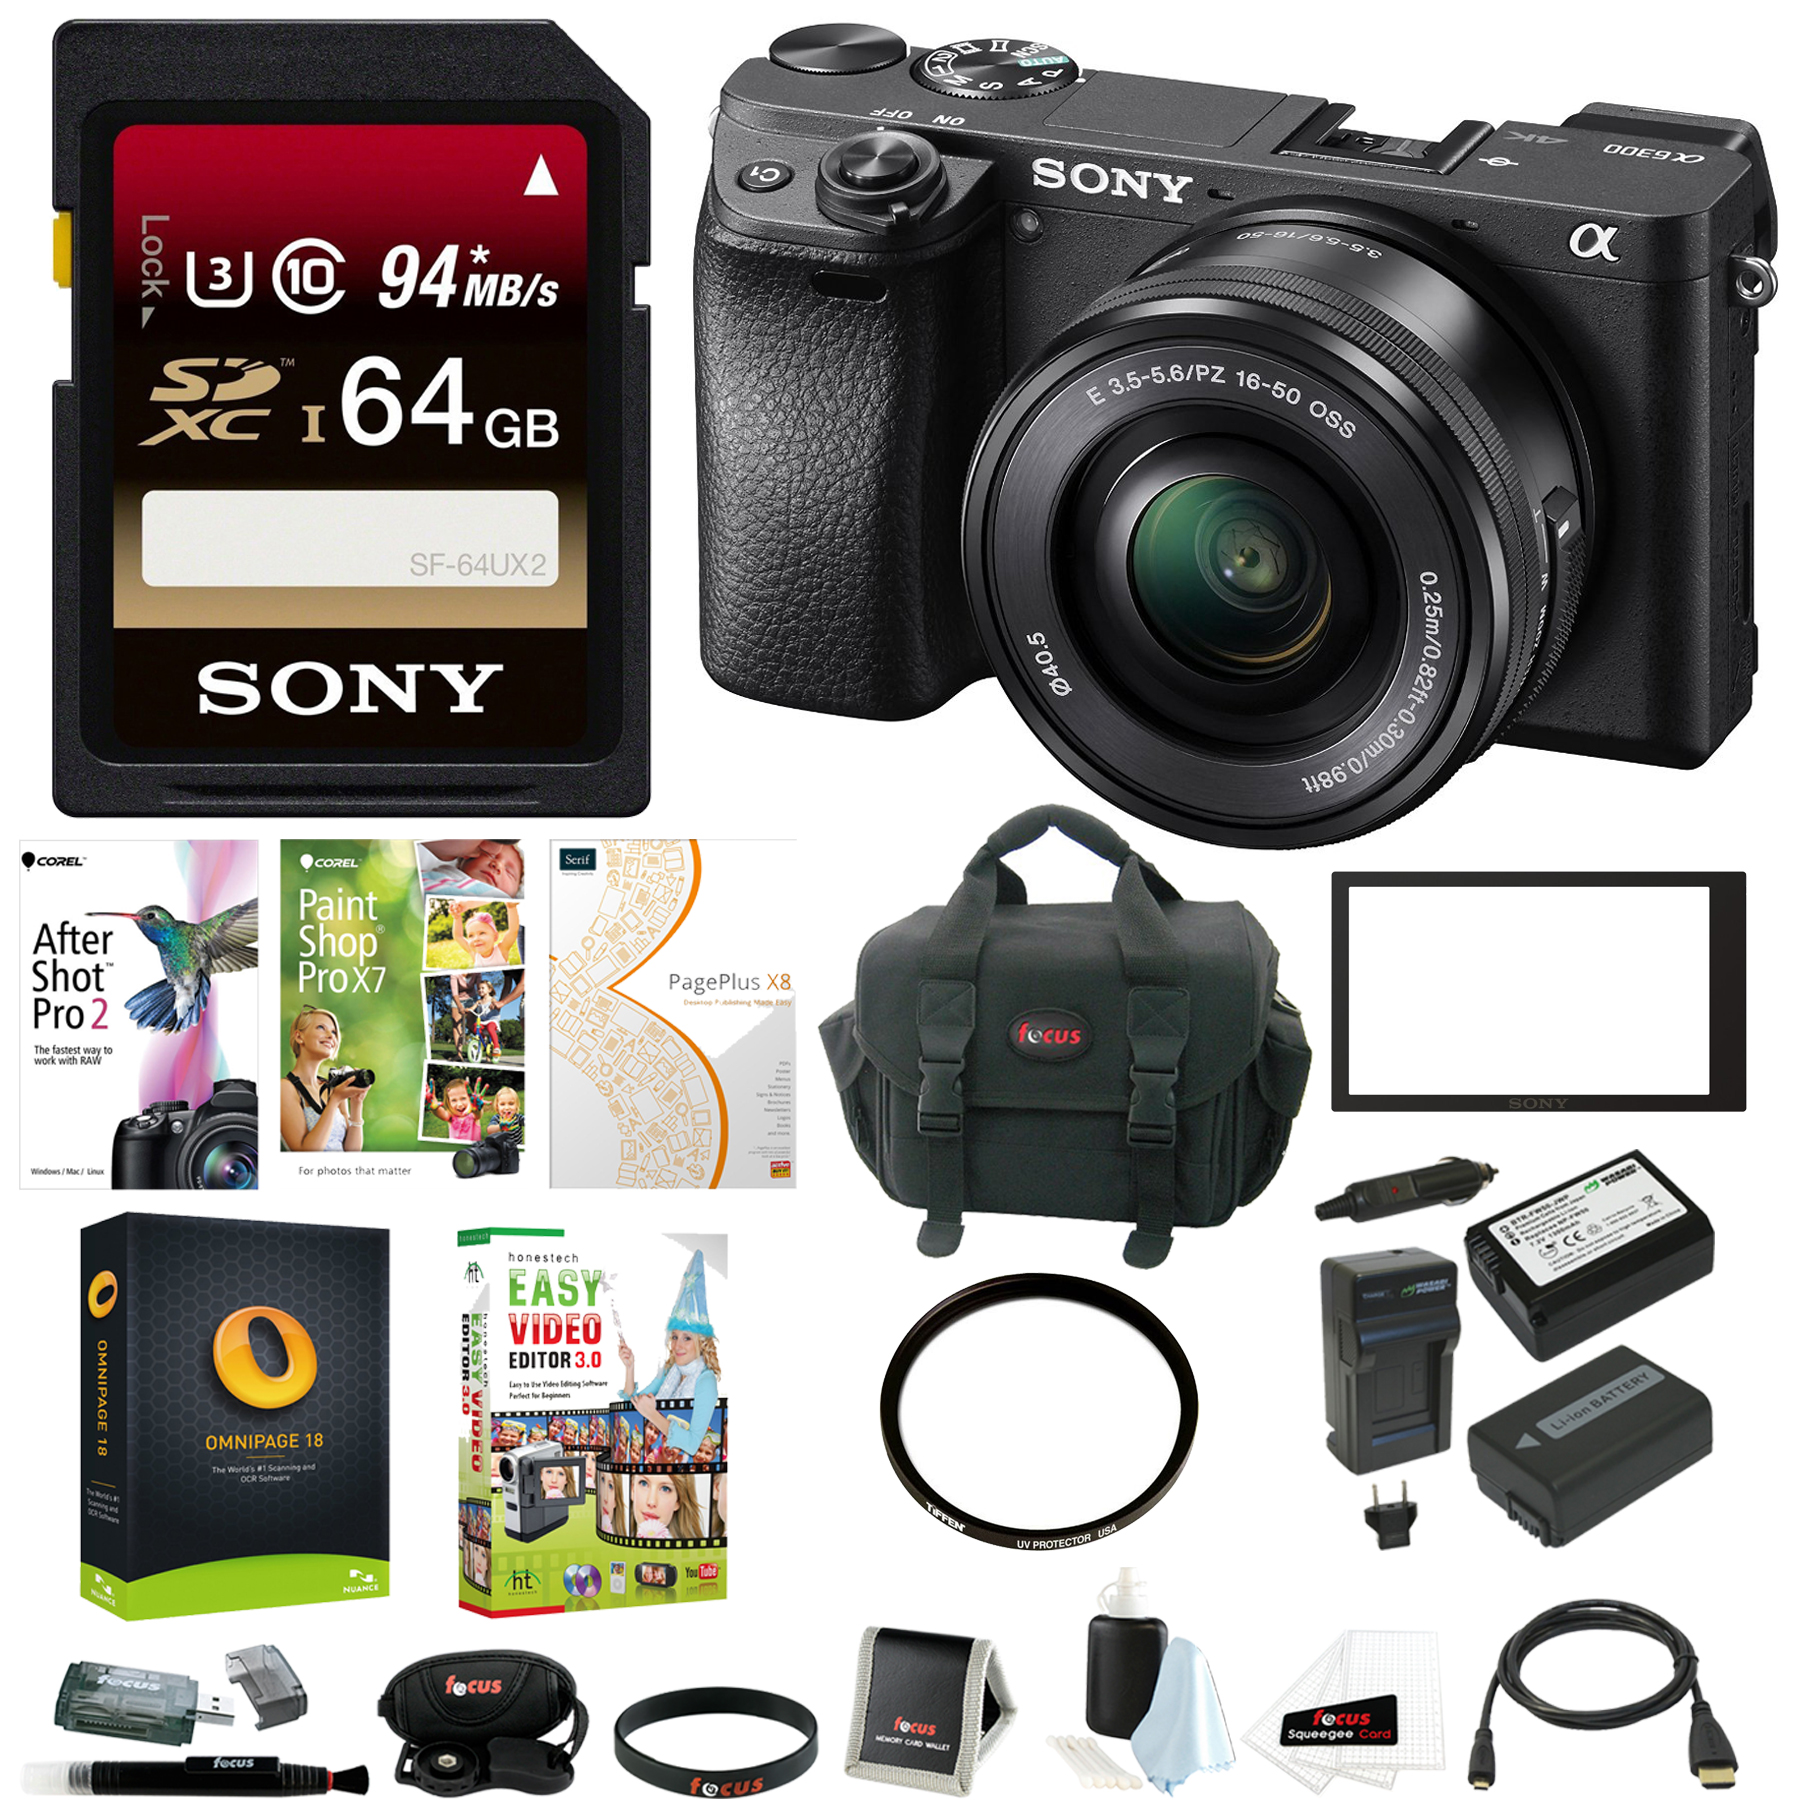 Sony a6300 Mirrorless Digital Camera w/ 16-50mm f/3.5-5.6 Lens & 64GB SD Card Bundle